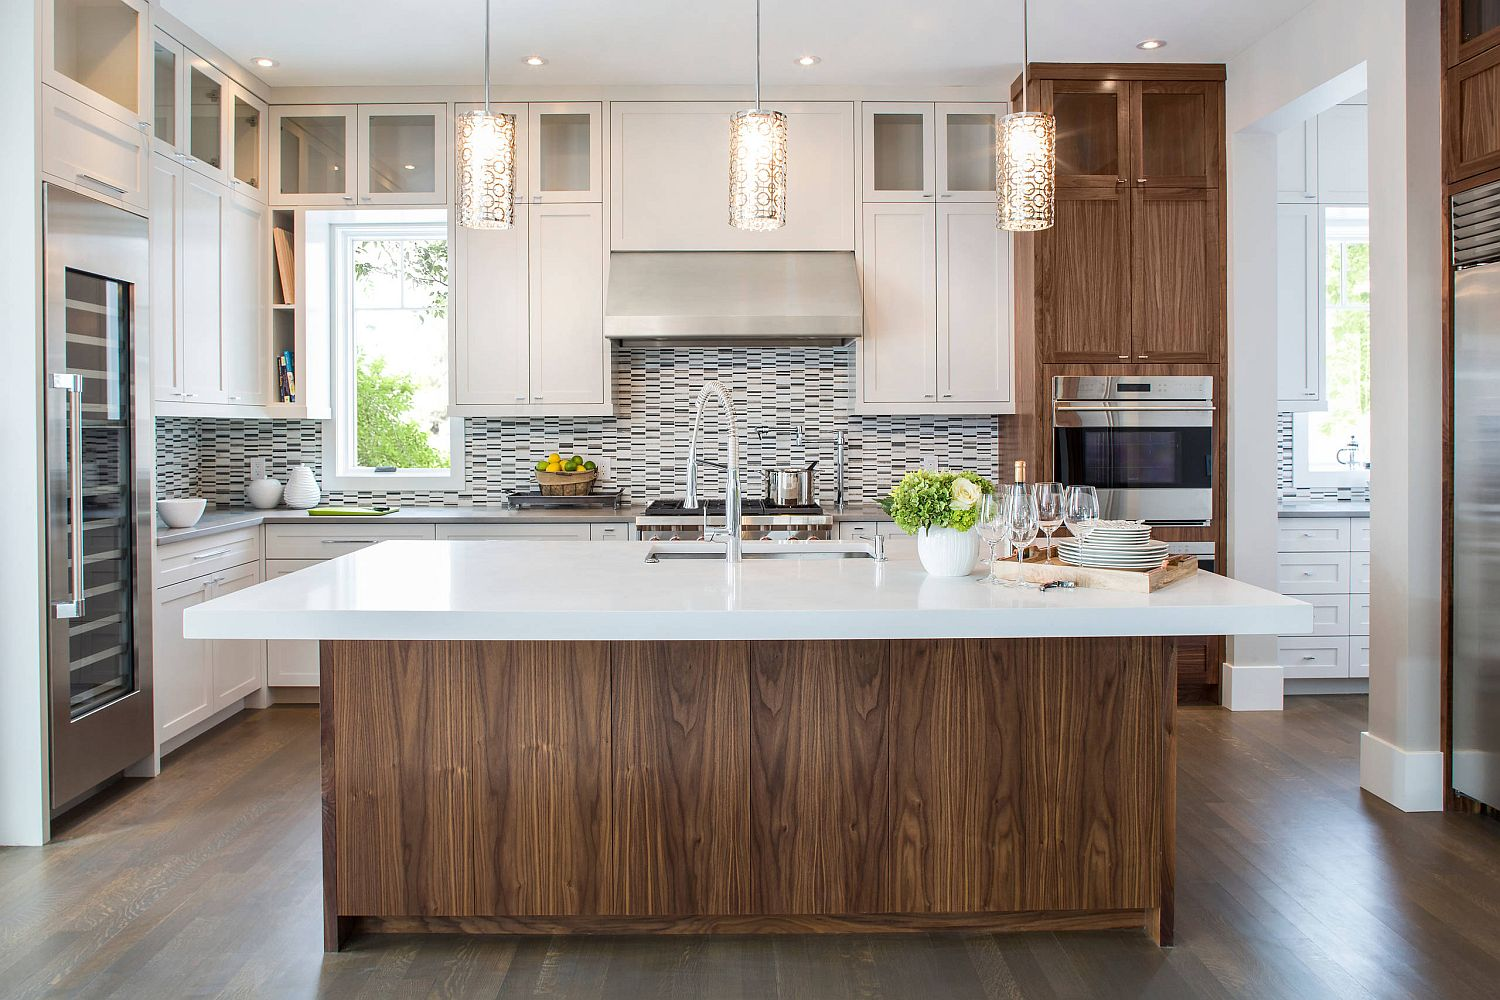 Wooden cabinets in the kitchen complement the island's woodsy charm perfectly